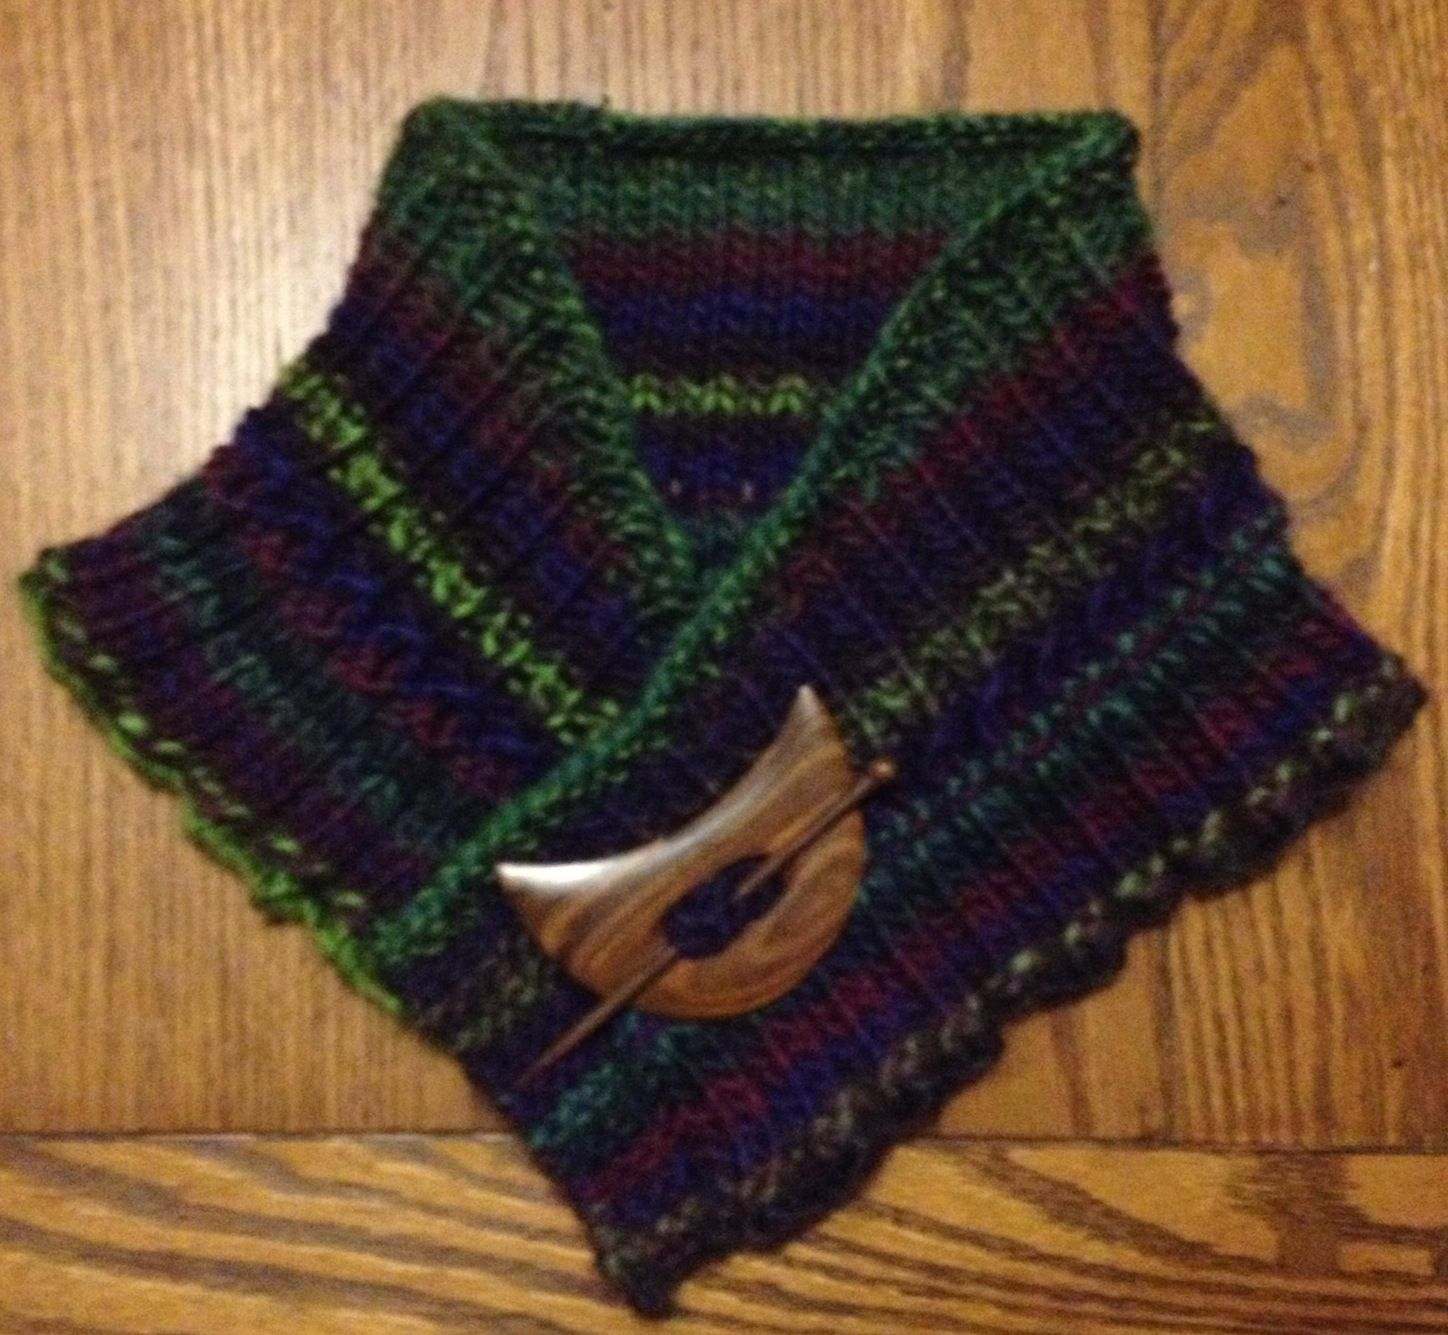 Knit 'Rachel's Slow Curve Scarf' from nobleknits.com